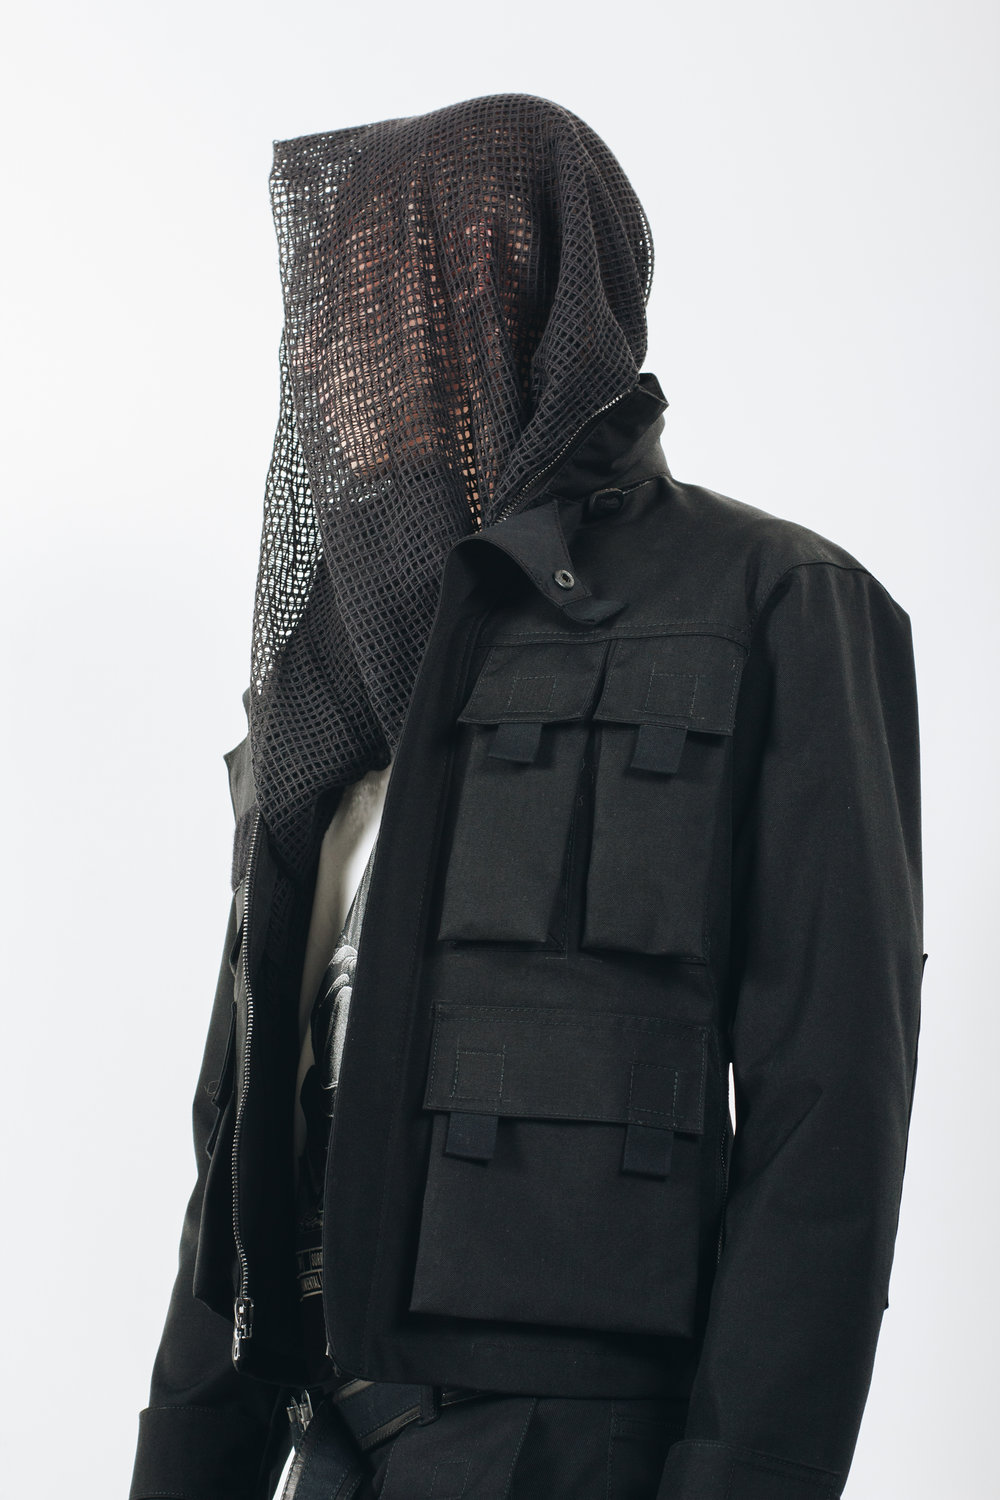 Nomenklatura Studio Lookbook Final (11 of 15).jpg